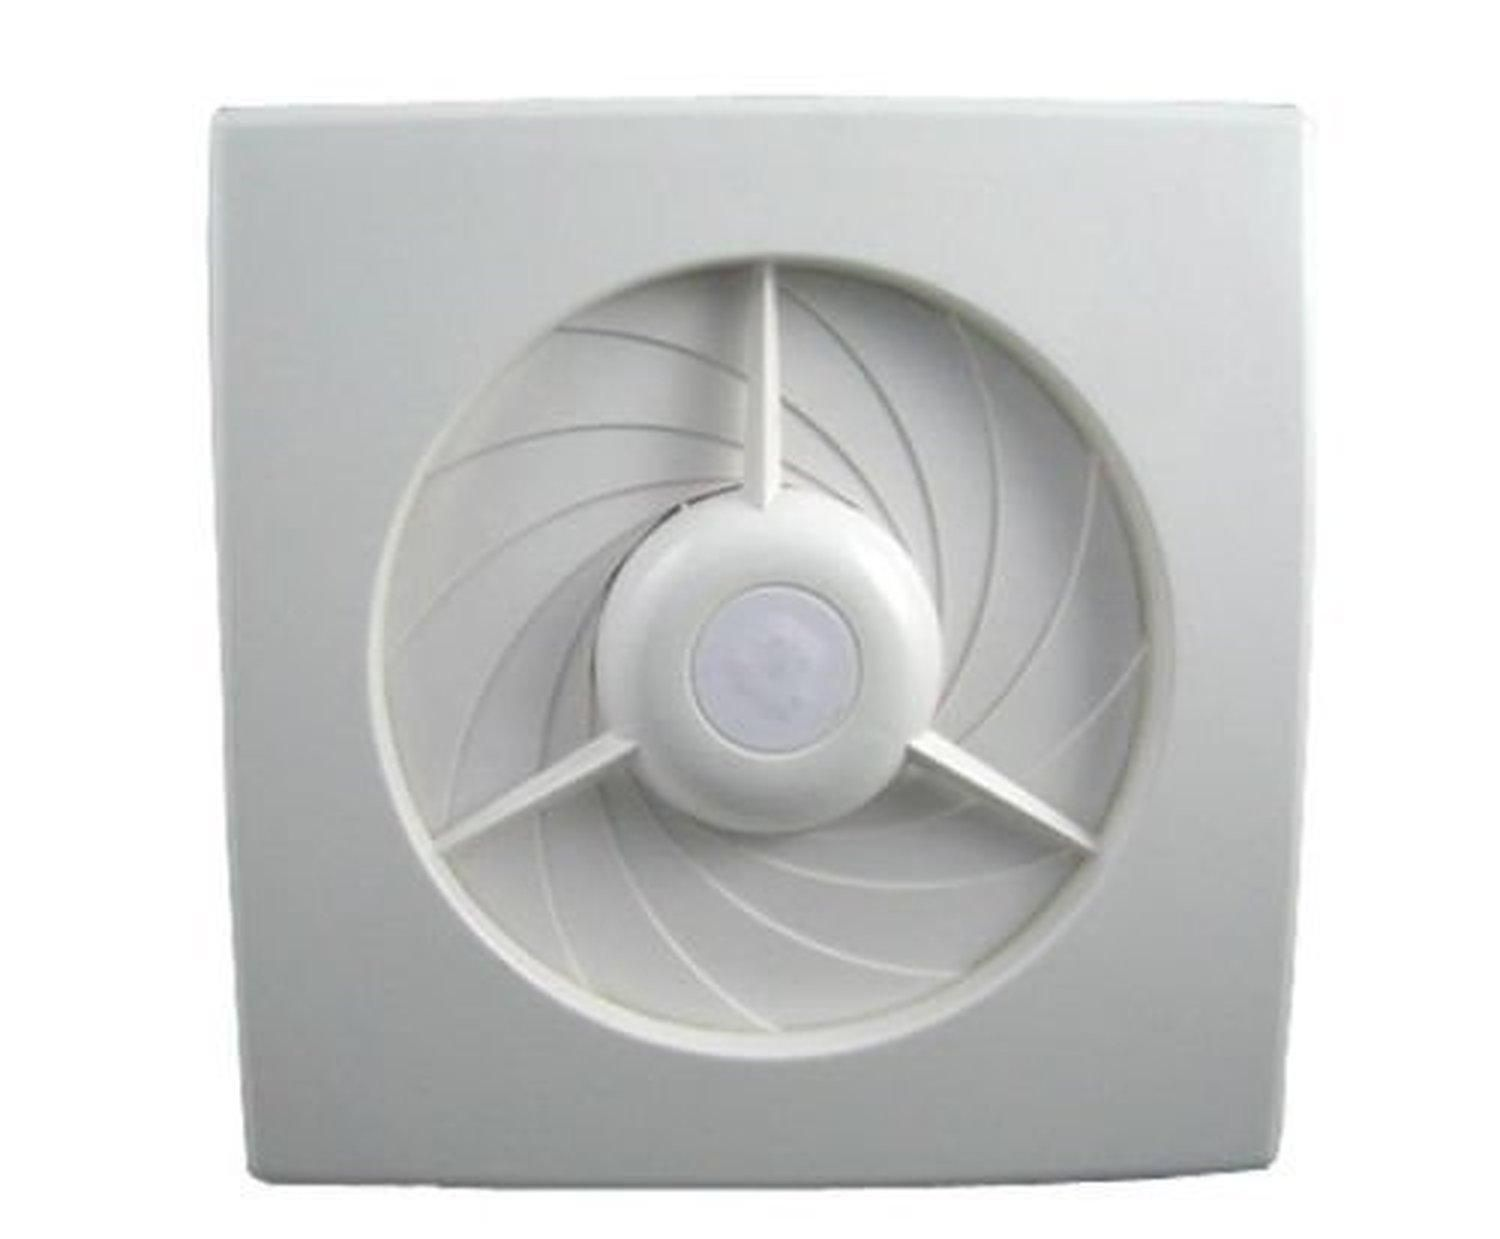 4 6 inch extractor exhaust fan window wall kitchen for Bathroom extractor fan